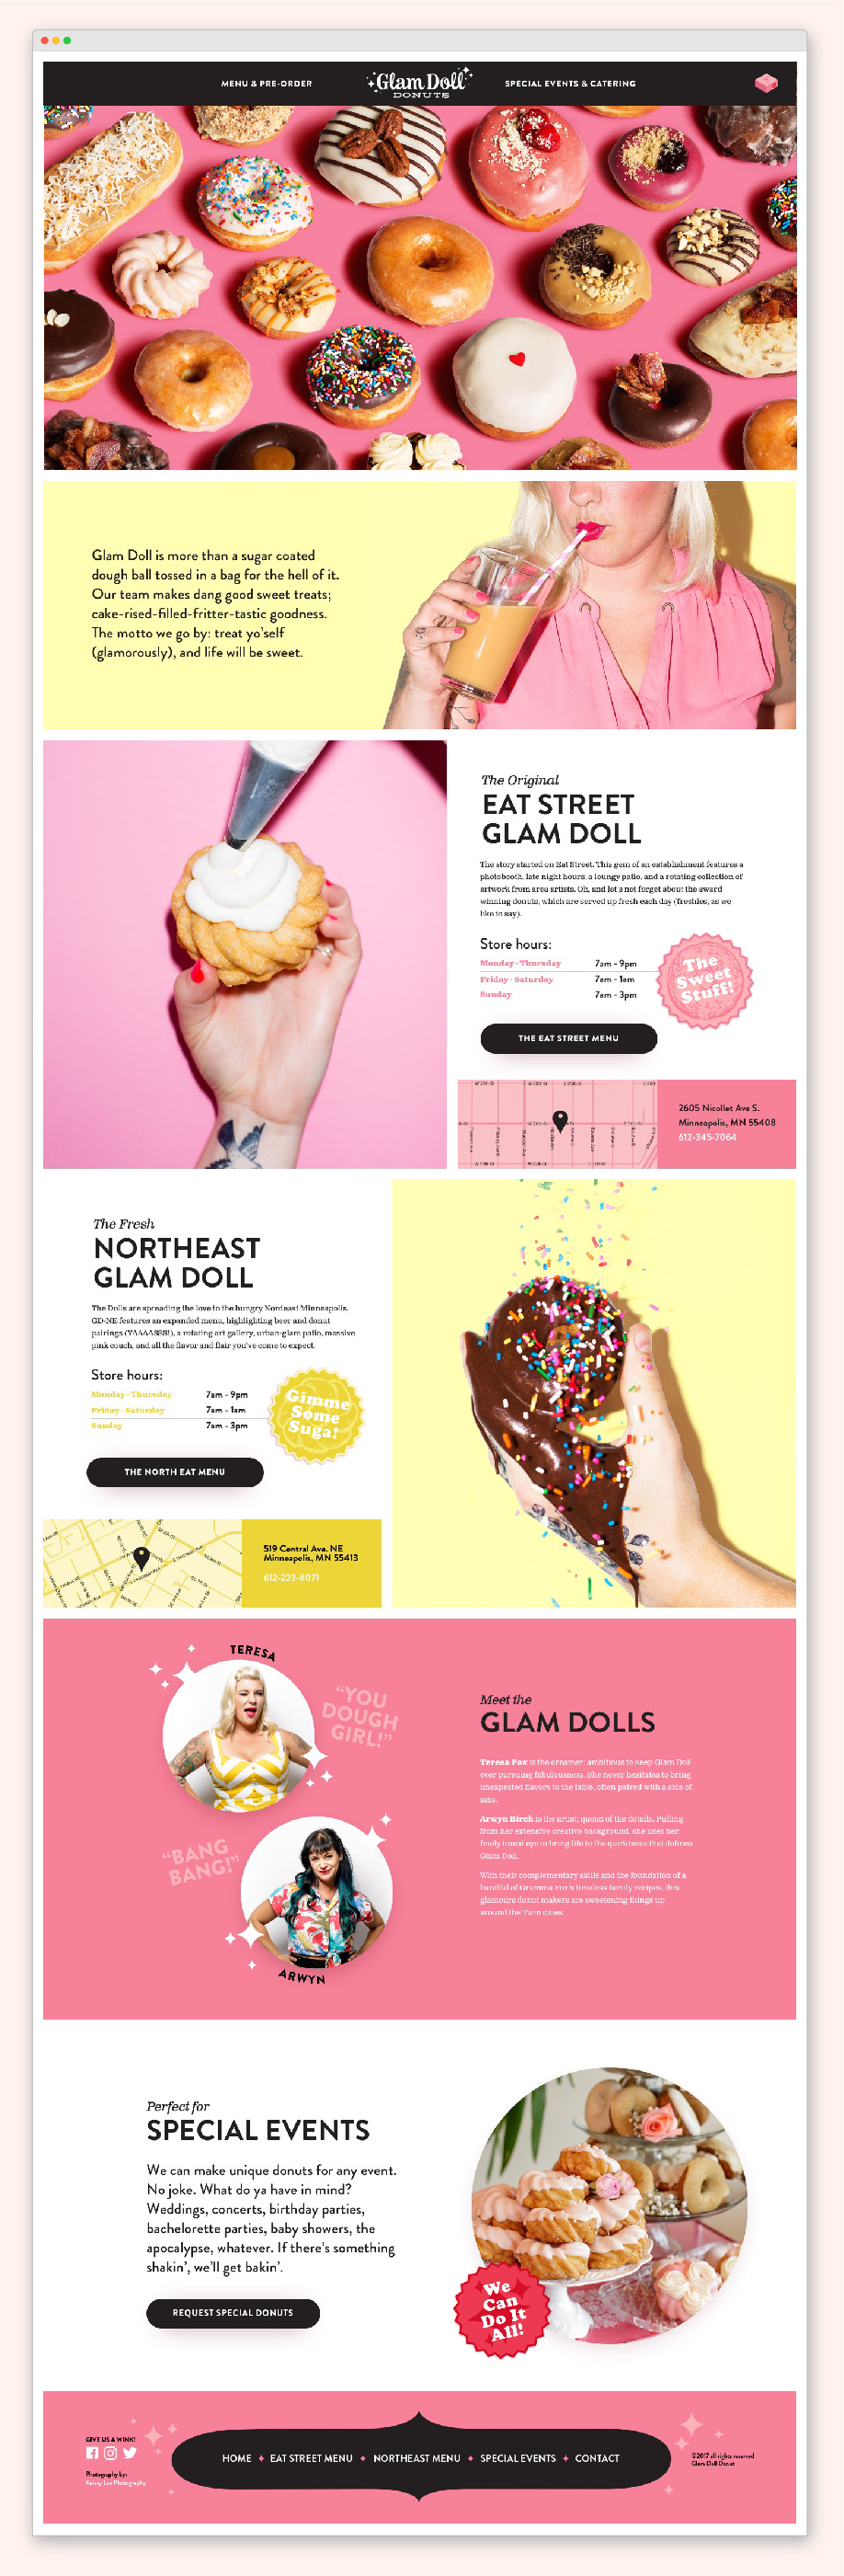 case-study-glamdoll_website-home.jpg